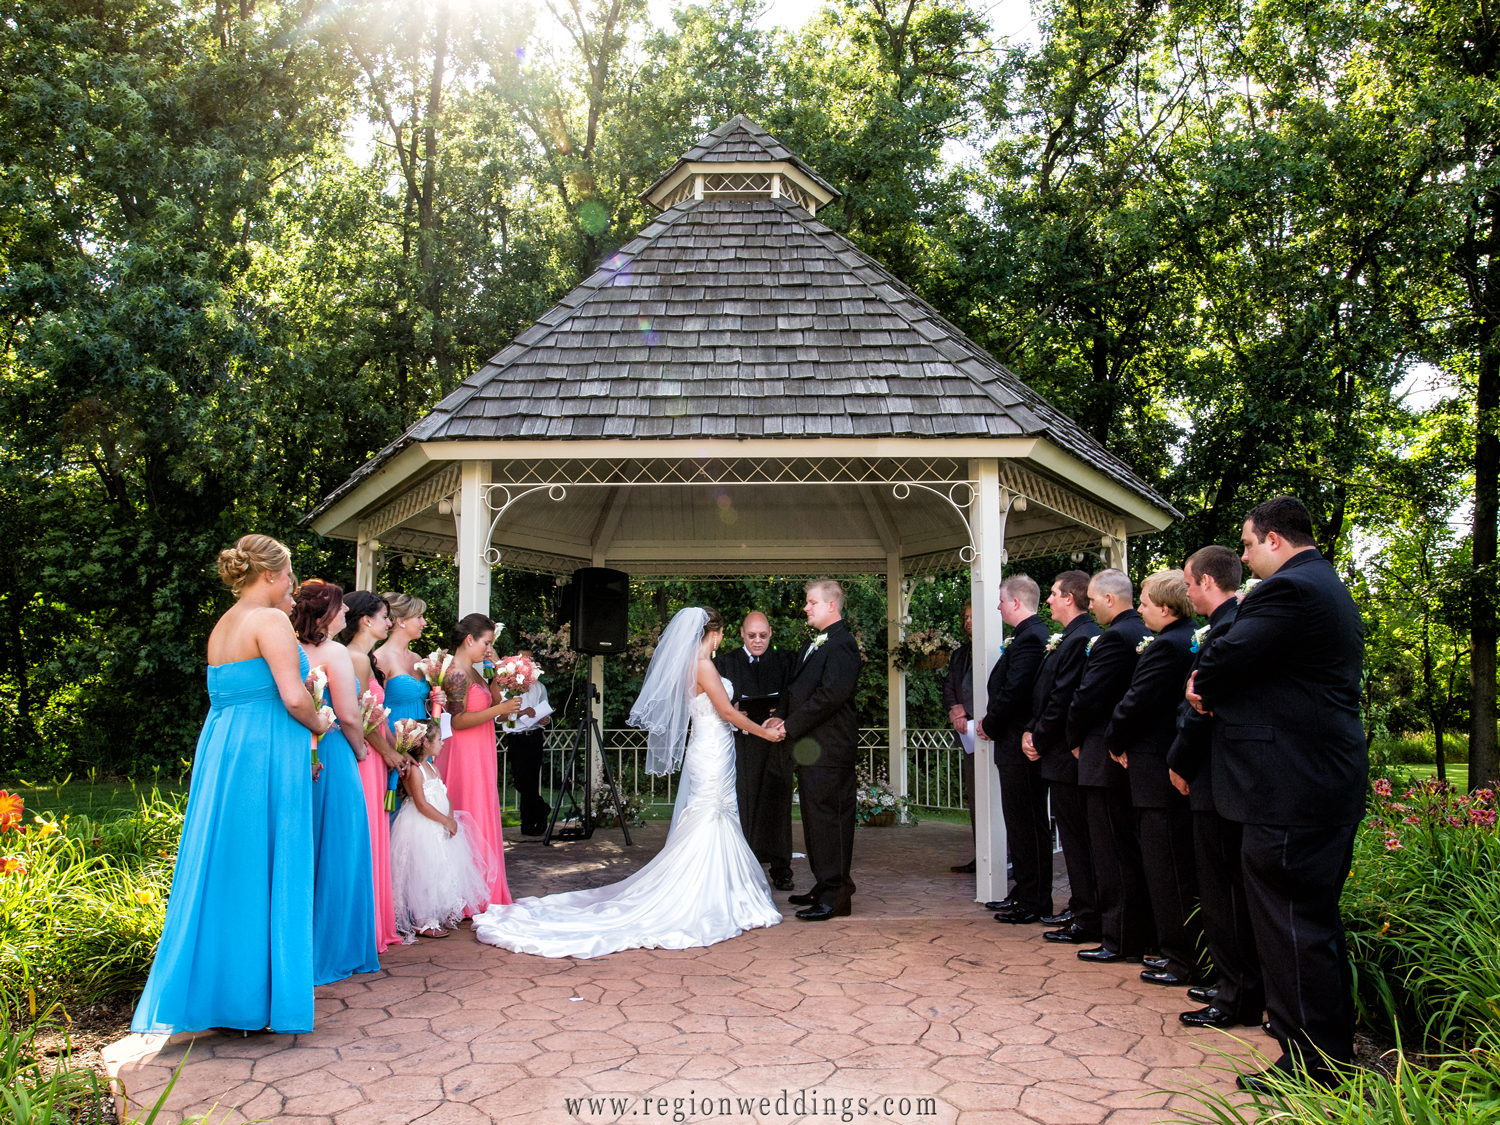 An outdoor summer wedding in the gazebo at the Halls of St. George in Schererville, Indiana.